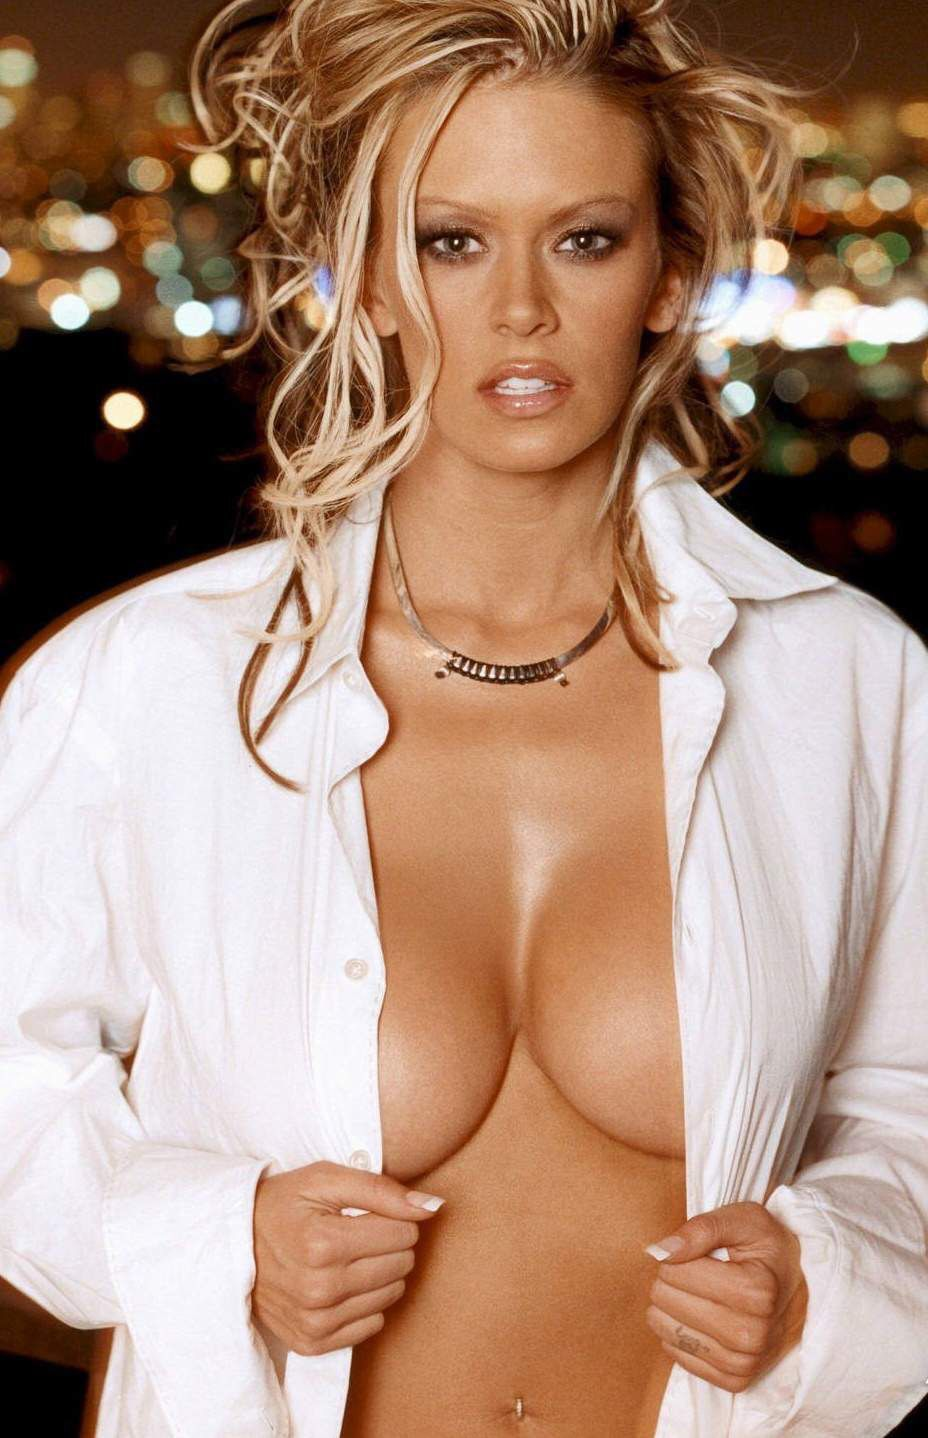 Hot Hot Jenna Jameson naked photo 2017